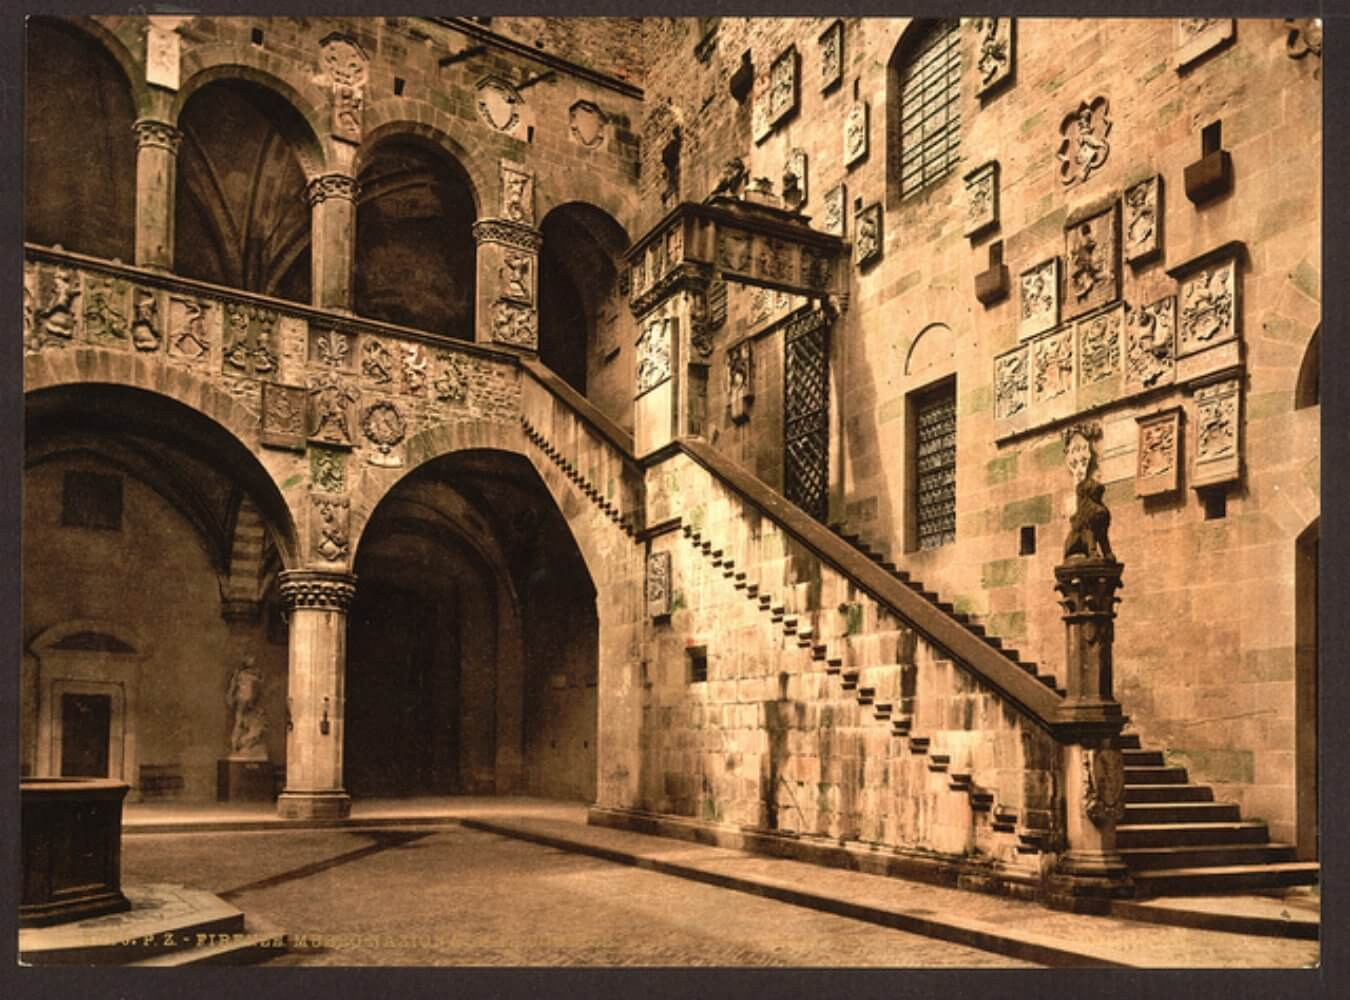 Tuscan-museums-The-Bargello-museum